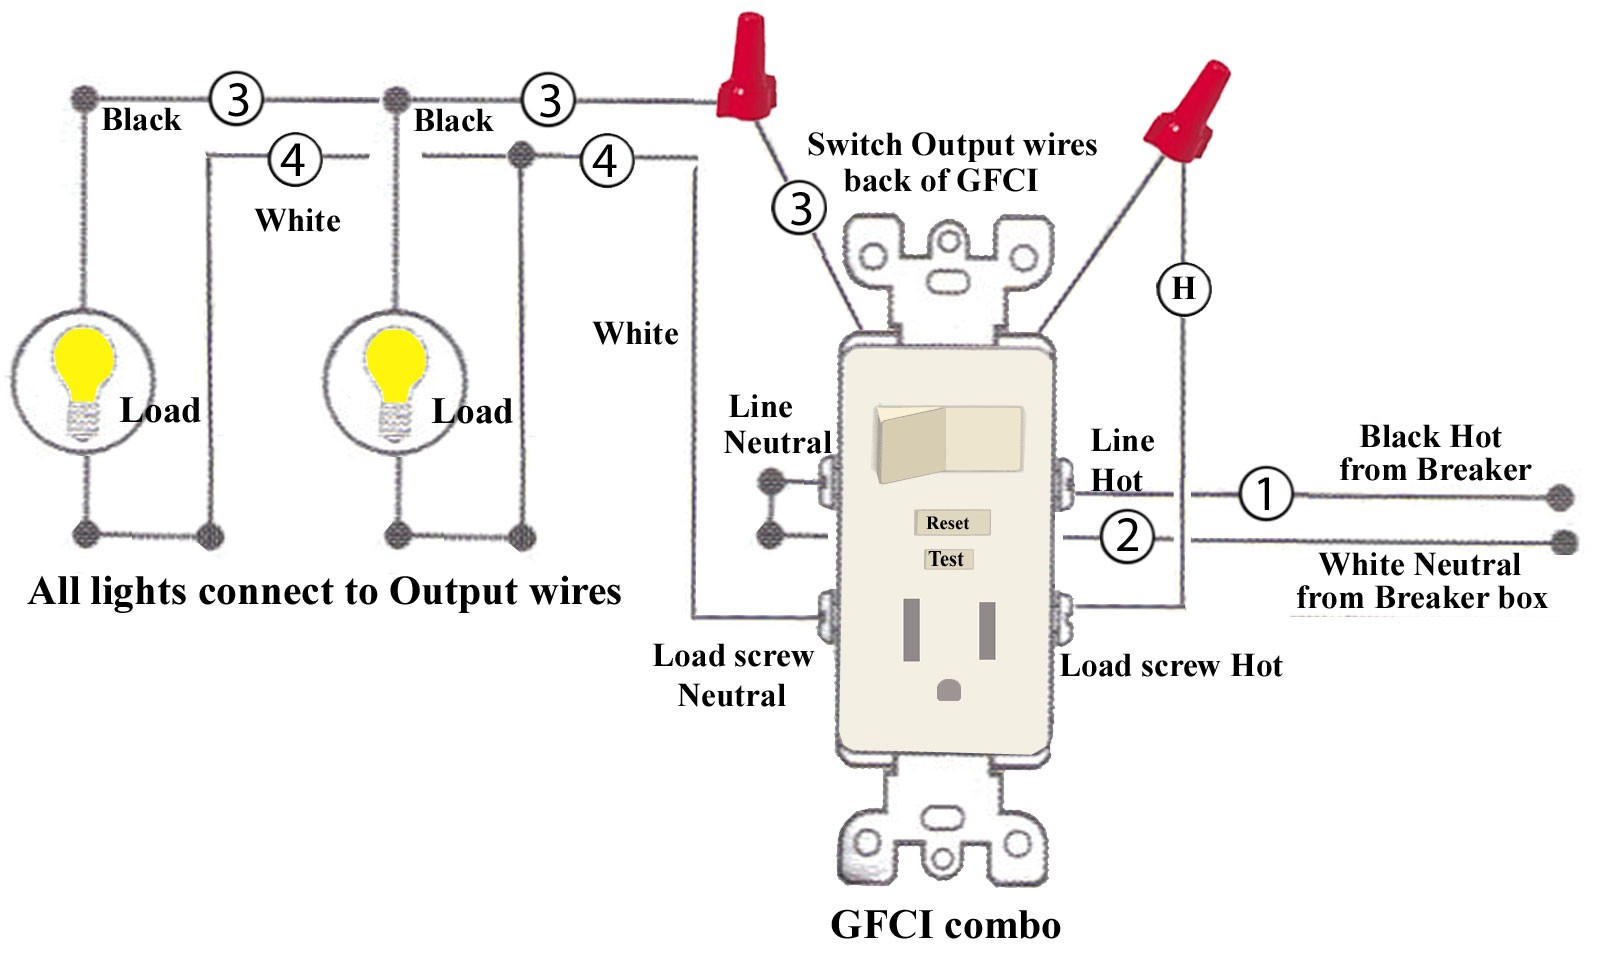 Zg 9179 Wiring An Outlet And Switch Combo Free Diagram